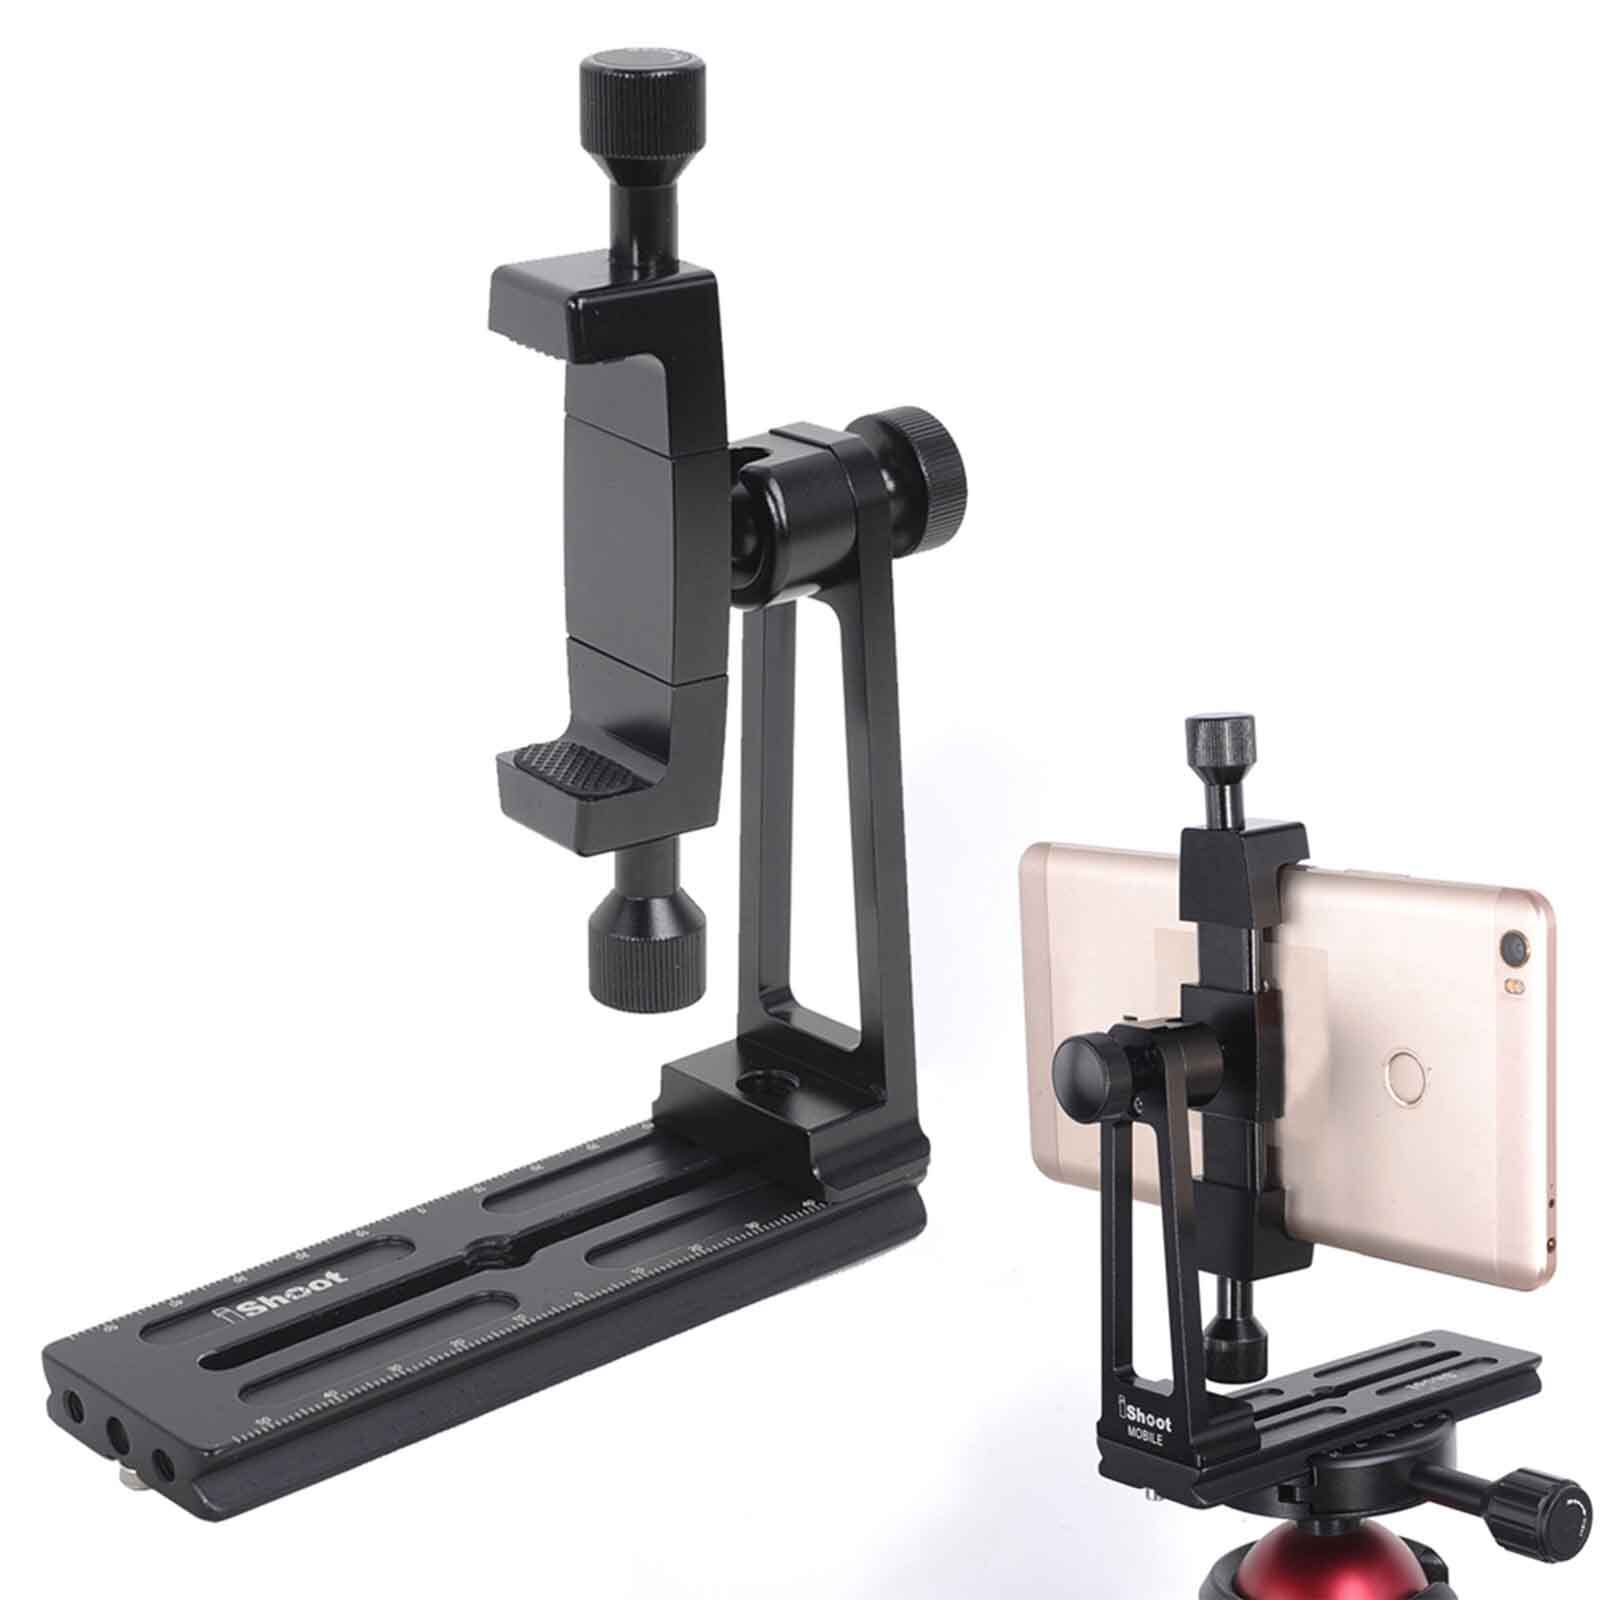 Universal Phone Mount 360° Rotate Bracket Holder Clamp Adapter w/QR Plate for ARCA-SWISS Fit Tripod Ball Head